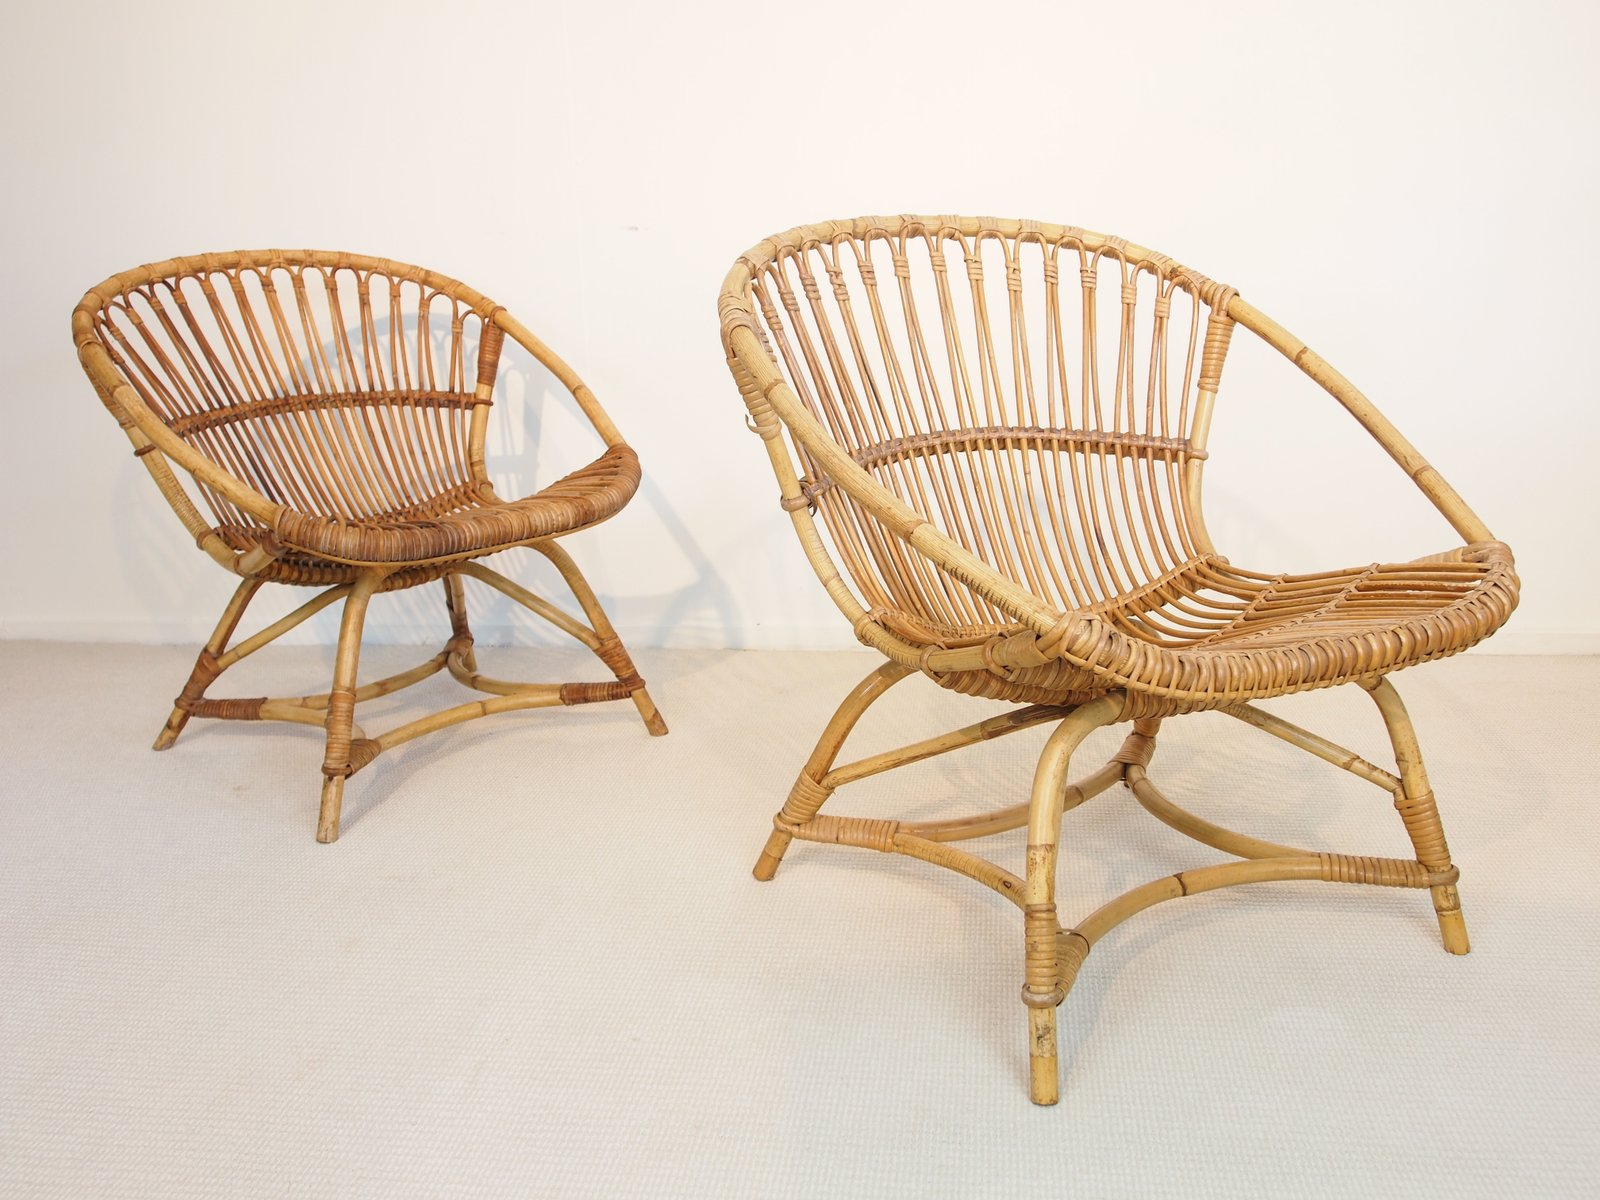 High Quality Mid Century Dutch Rattan Lounge Chairs By Dirk Van Sliedregt For